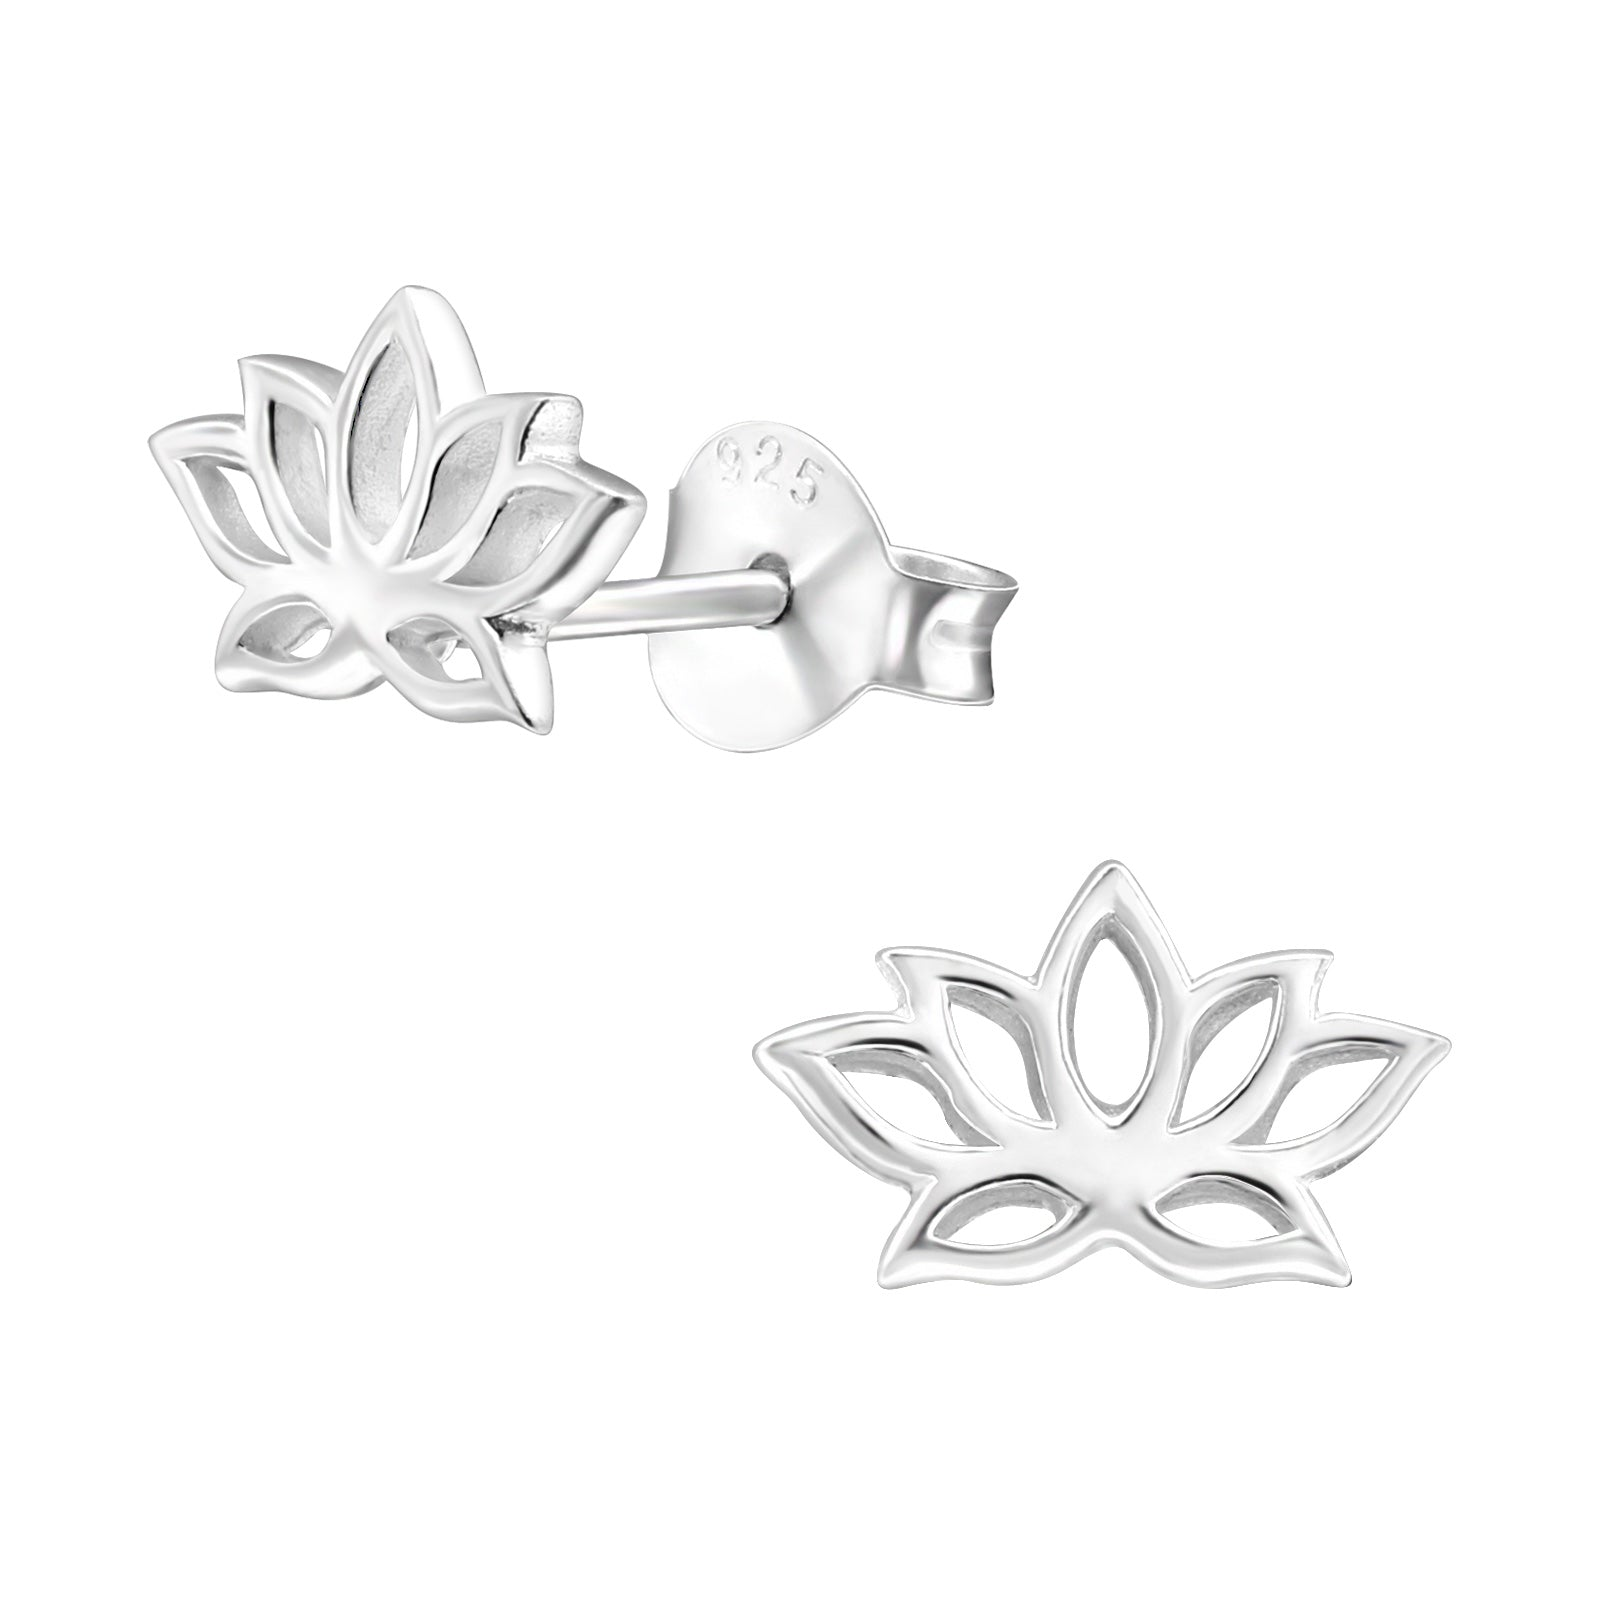 Beautiful lotus flower stud earrings represent spirituality, and the purity of heart and mind.